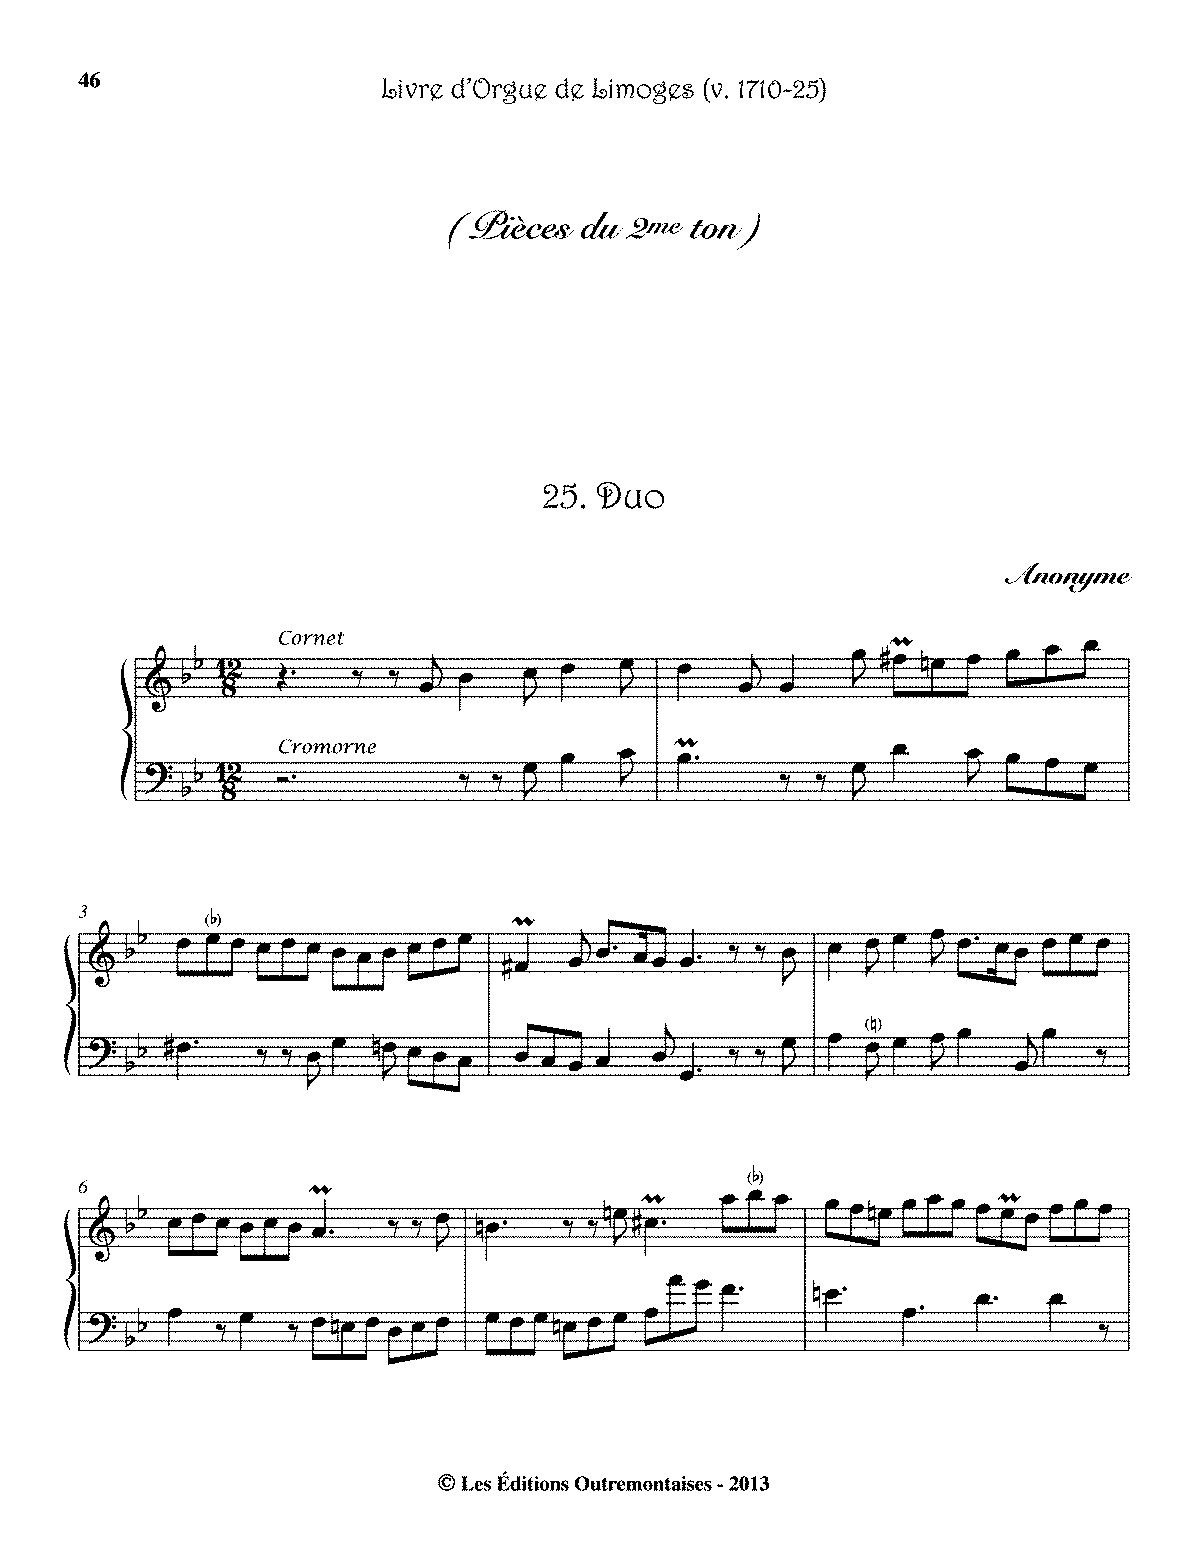 PMLP443972-Limoges Orgue 25 Duo.pdf